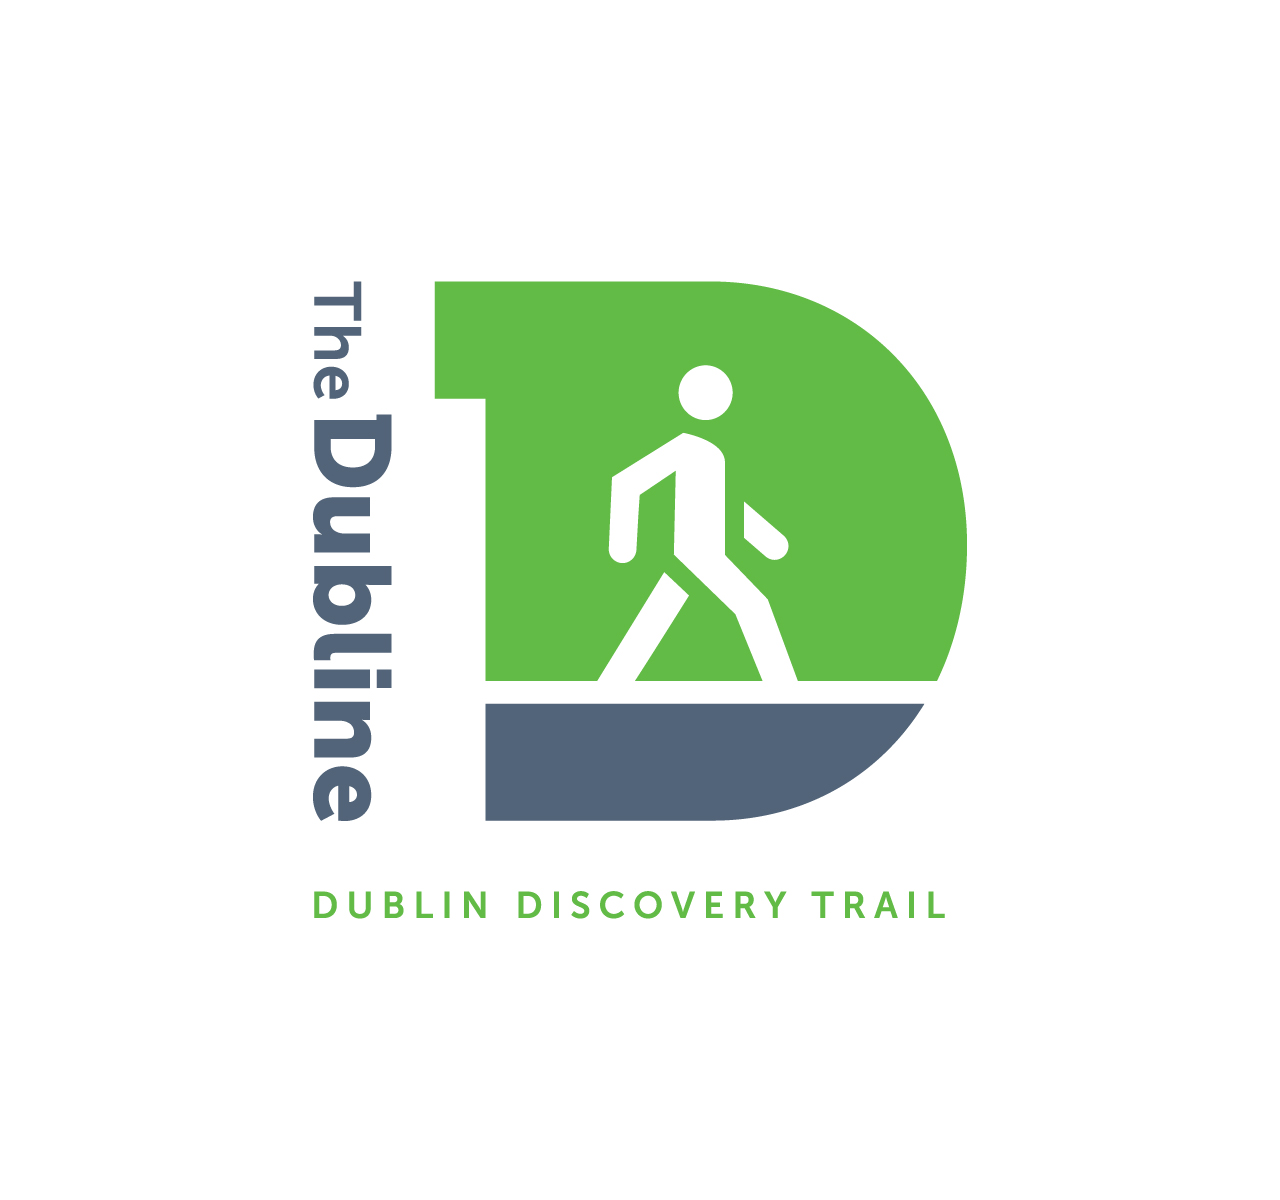 Cover image: Dubline - Dublin Discovery trail